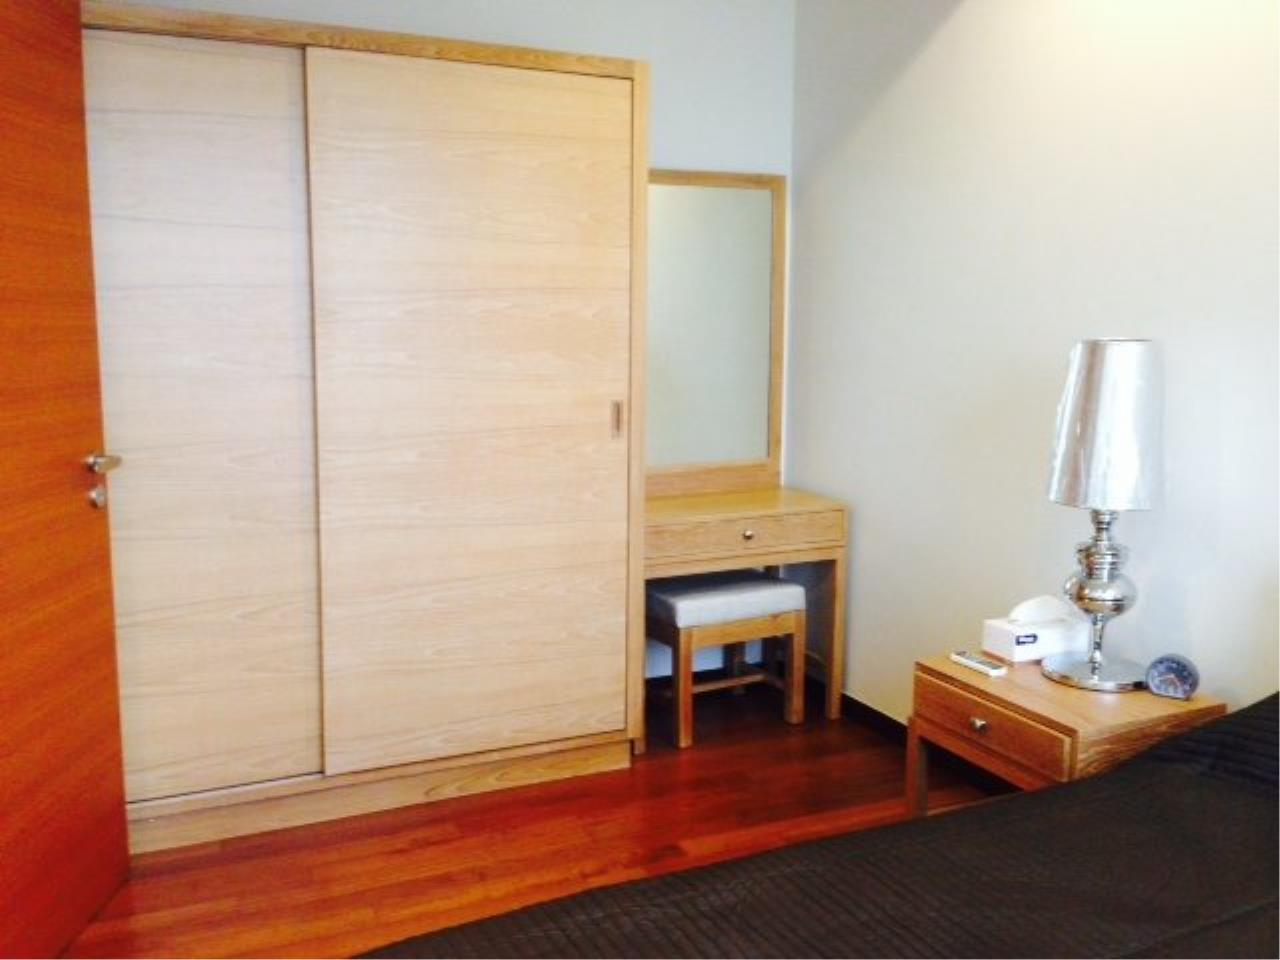 Piri Property Agency's Cozy 1 Bedroom Condo in the Ashton Bulding for rent on high floor 4